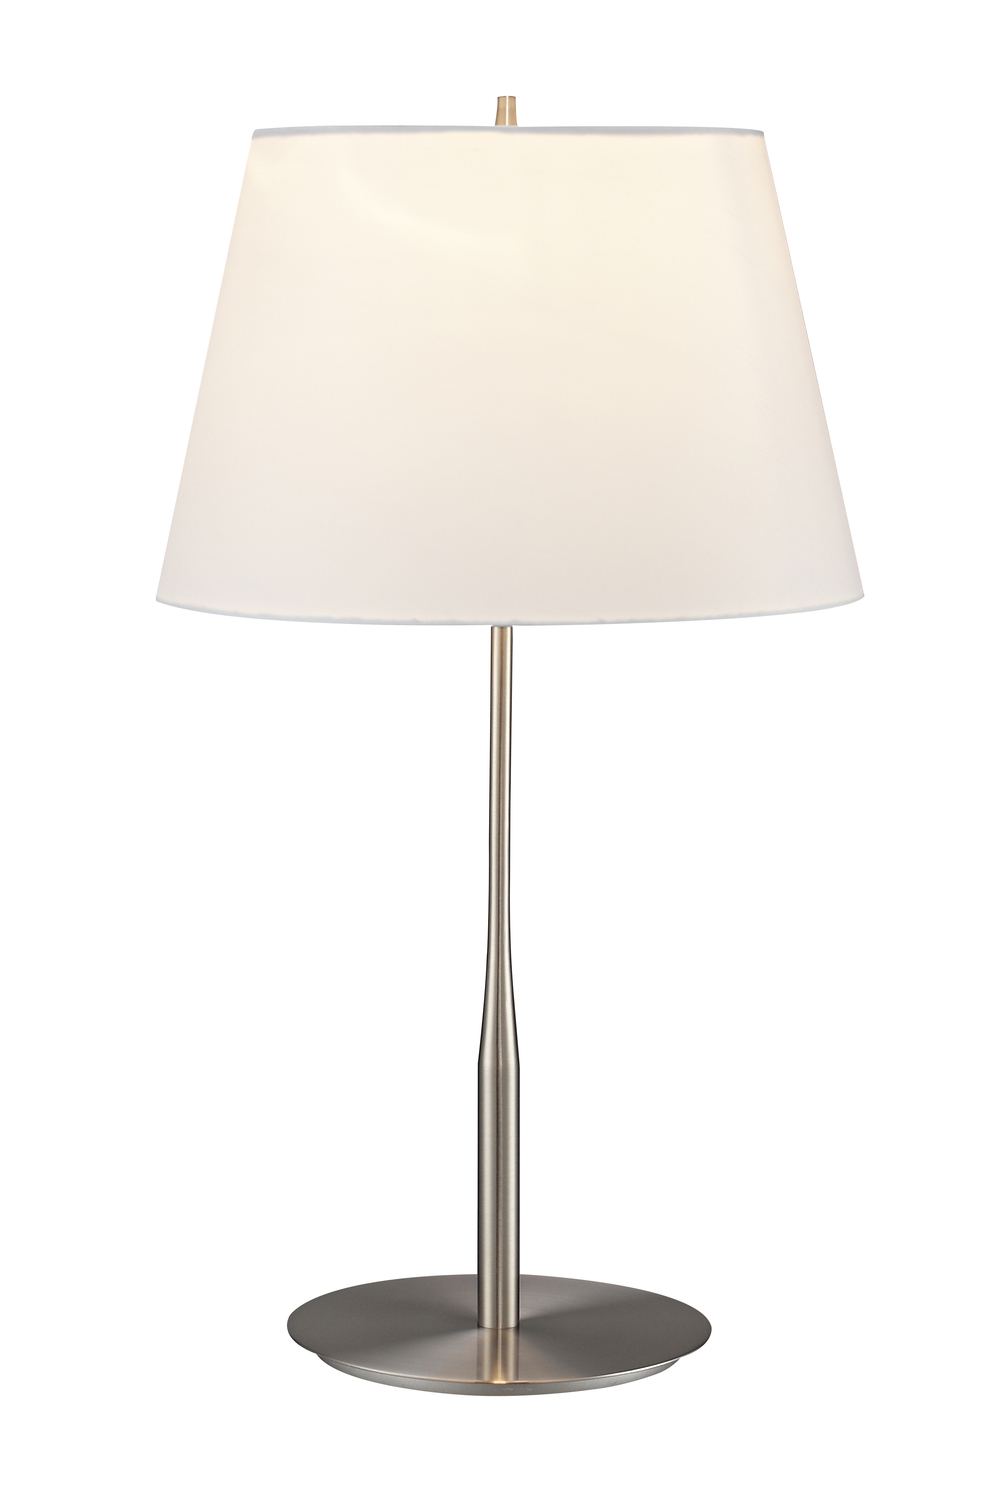 10023 | TAPER TABLE LAMP